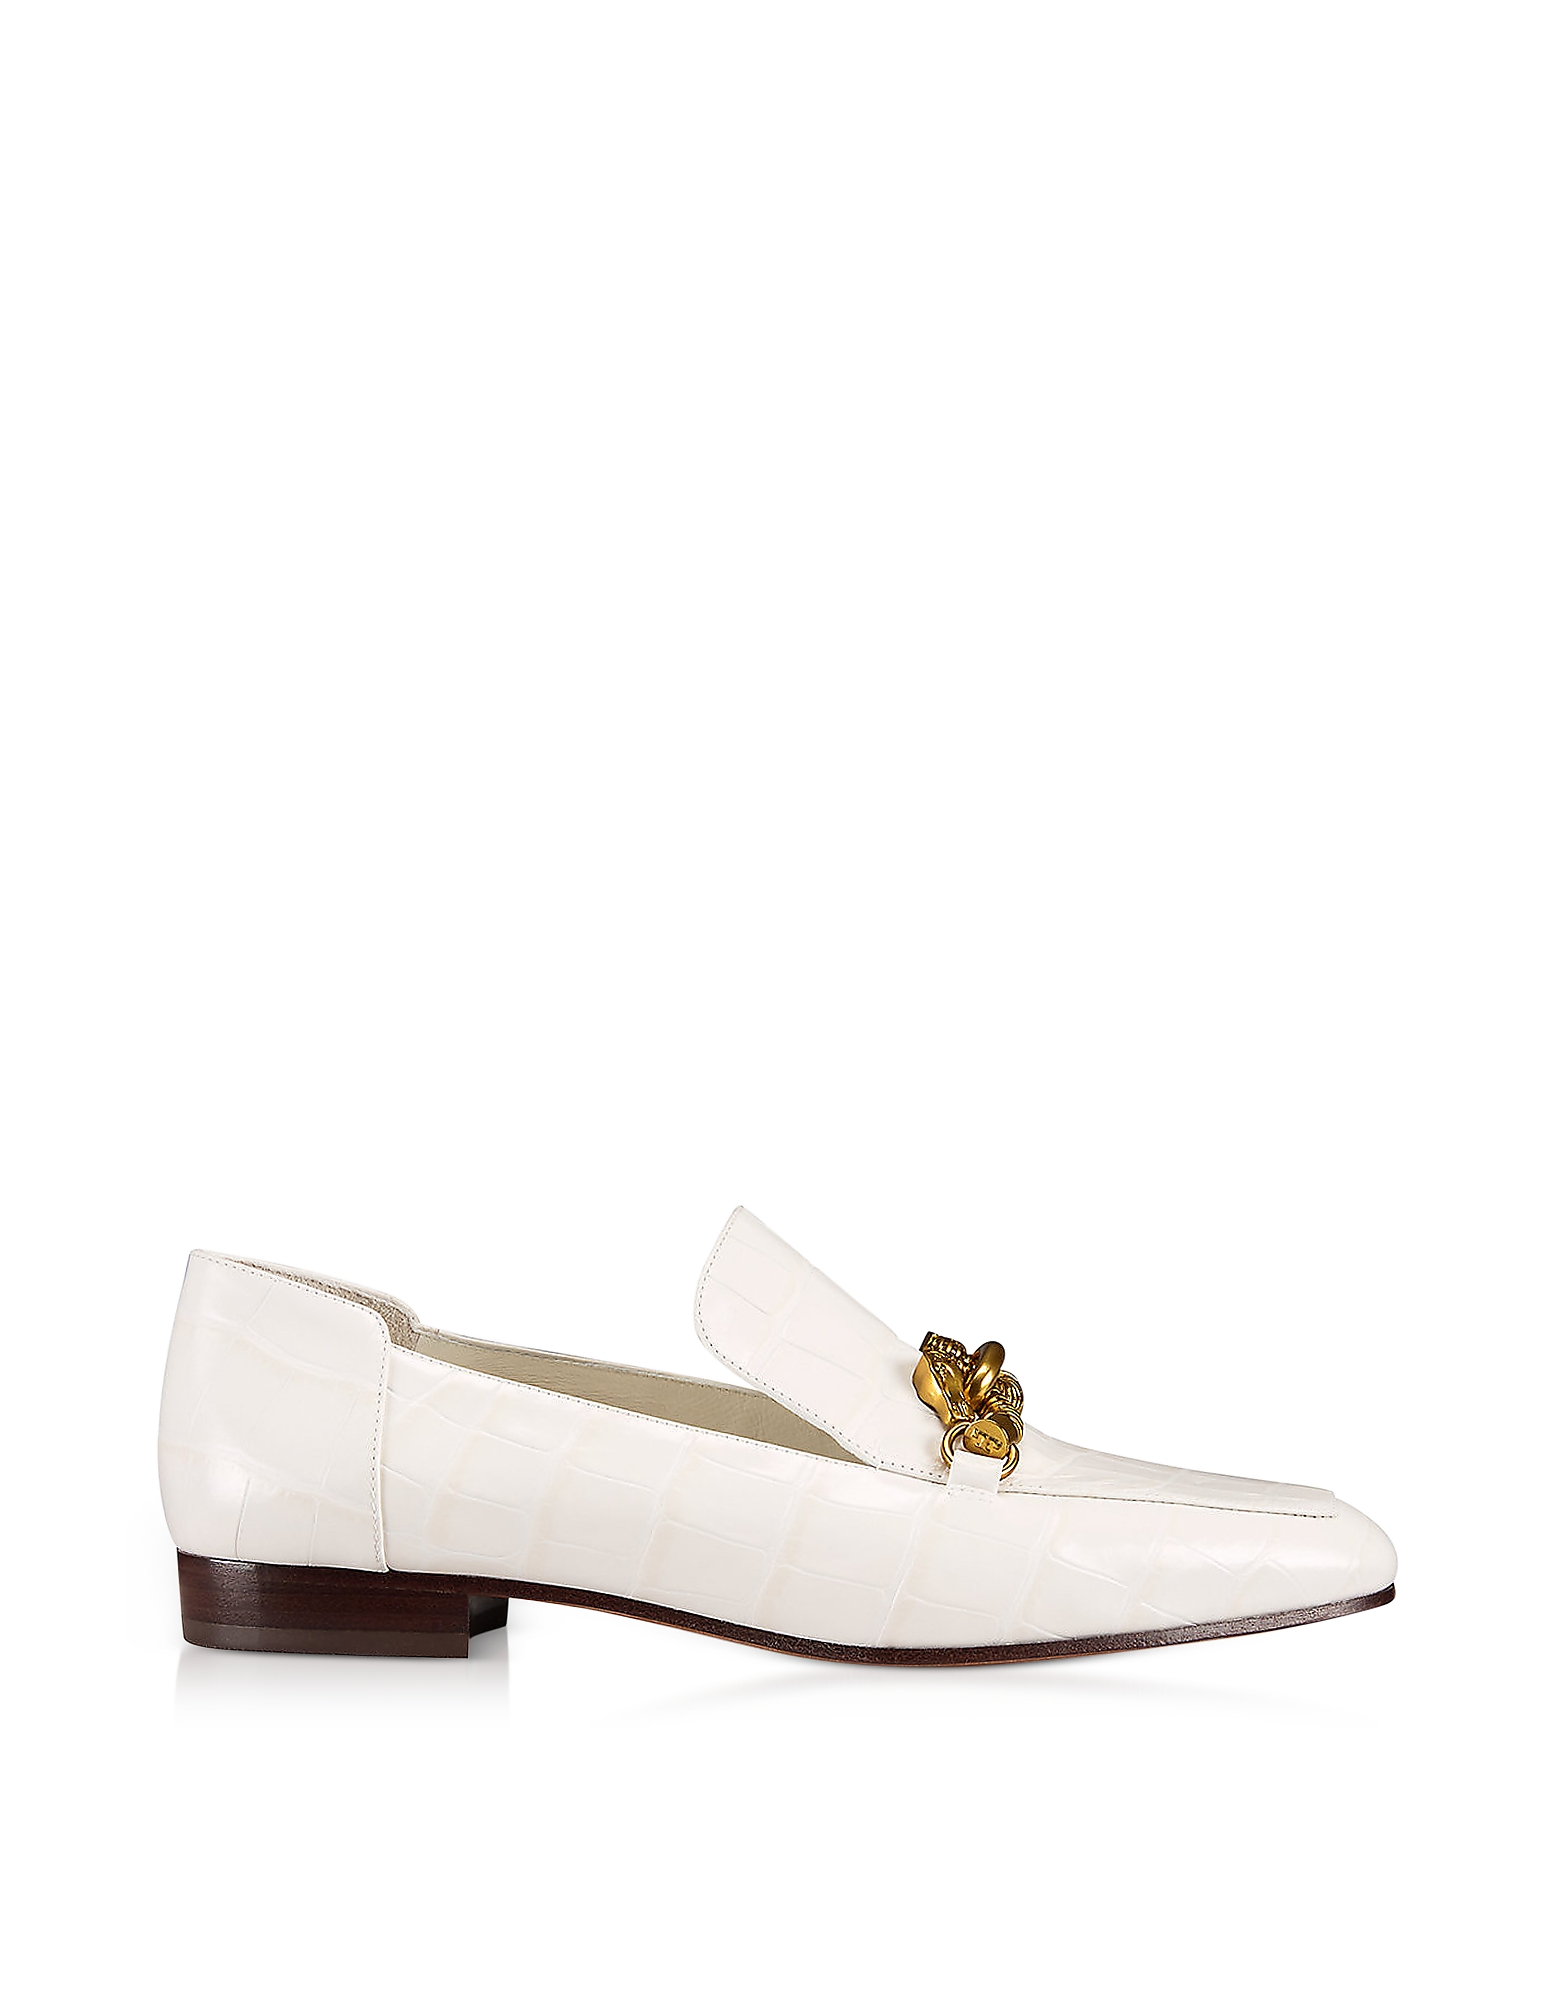 Tory Burch Shoes, Jessa White Croco Embossed Leather Loafers w/Goldtone Horse Hardware